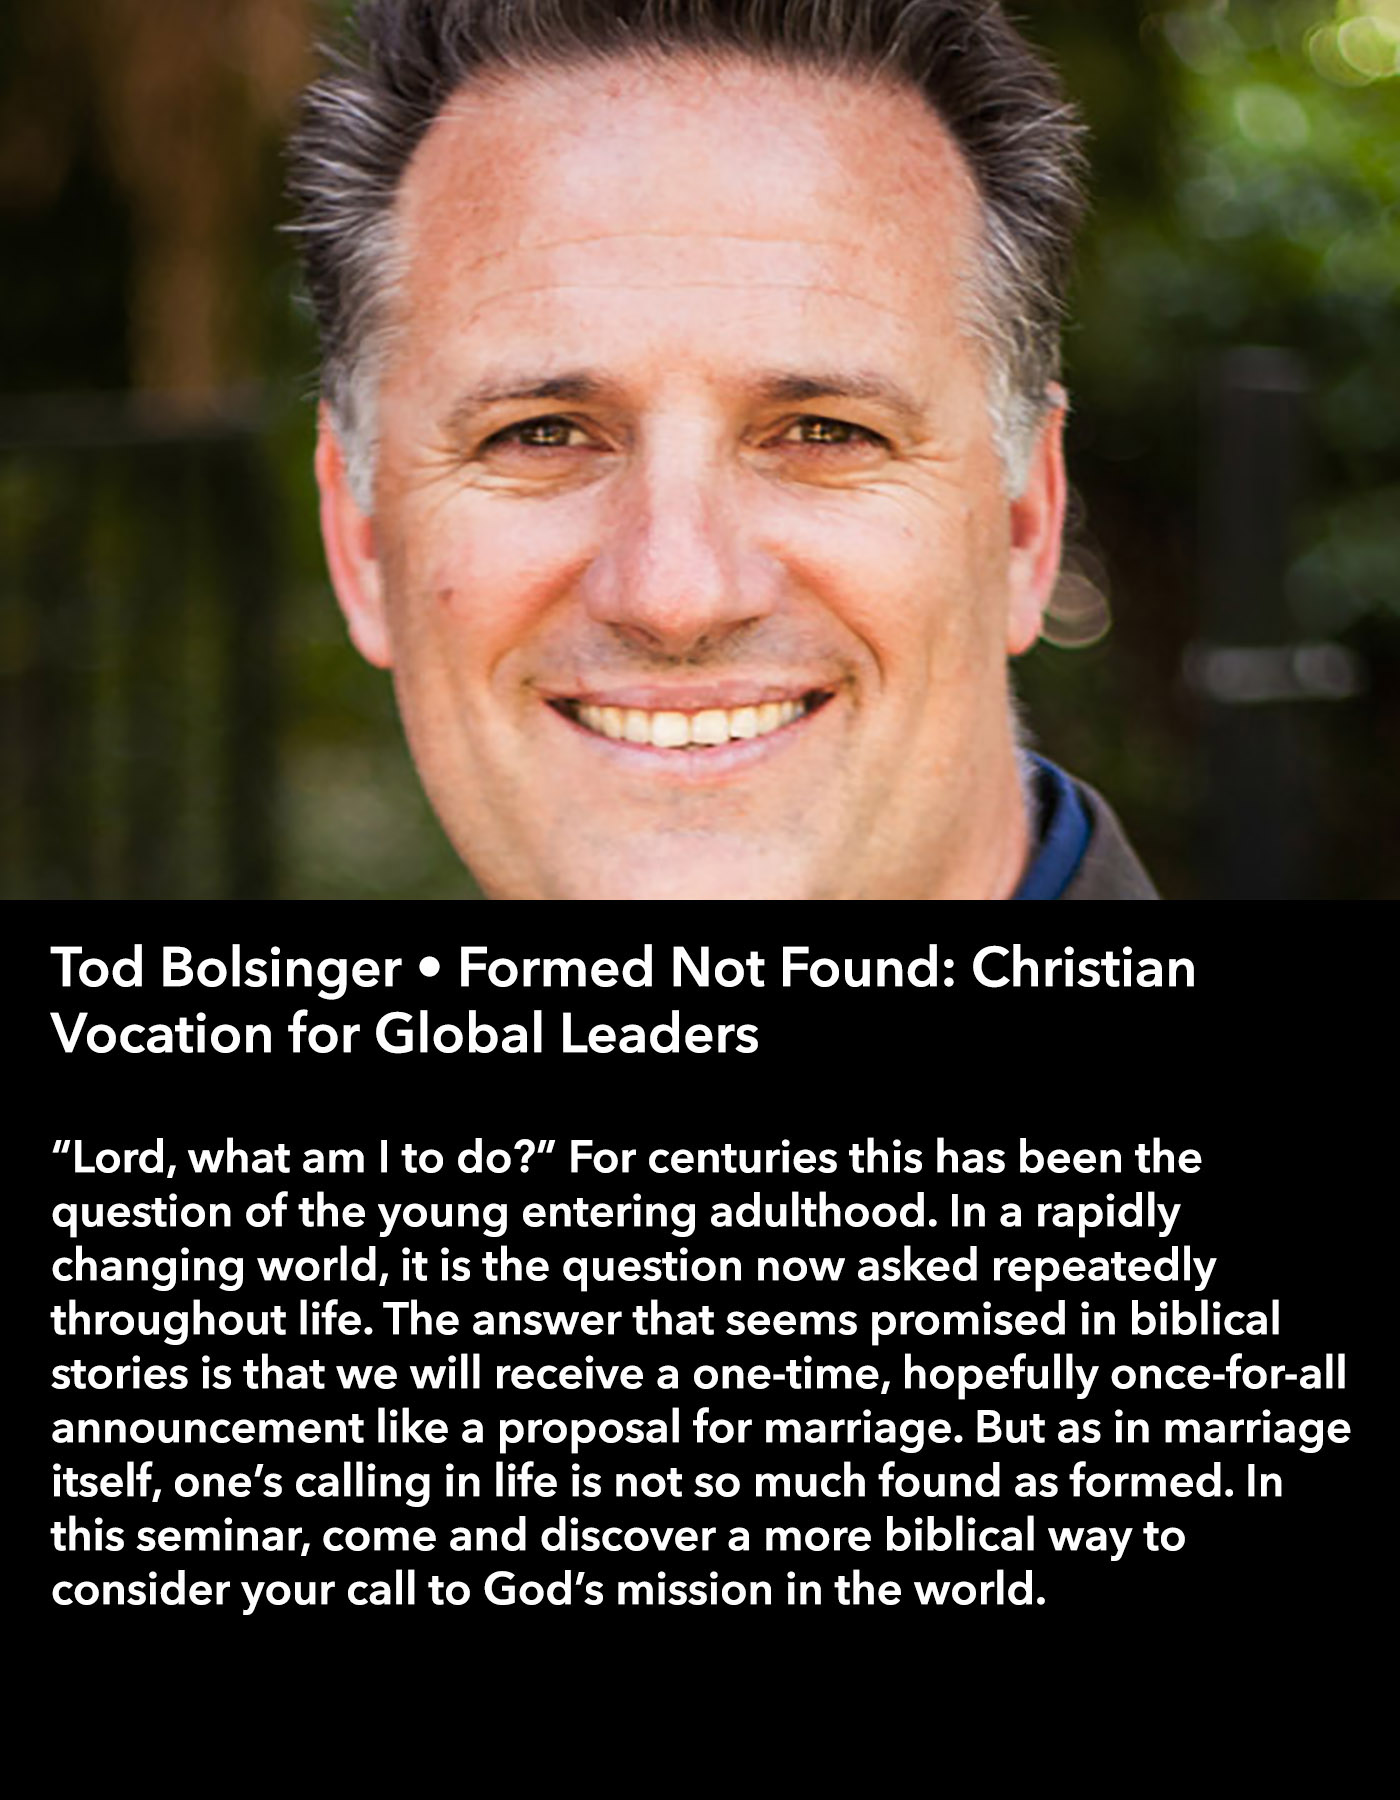 Tod Bolsinger • Formed Not Found: Christian Vocation for Global Leaders • Friday Afternoon, March 17 • 3:30 – 4:45 pm